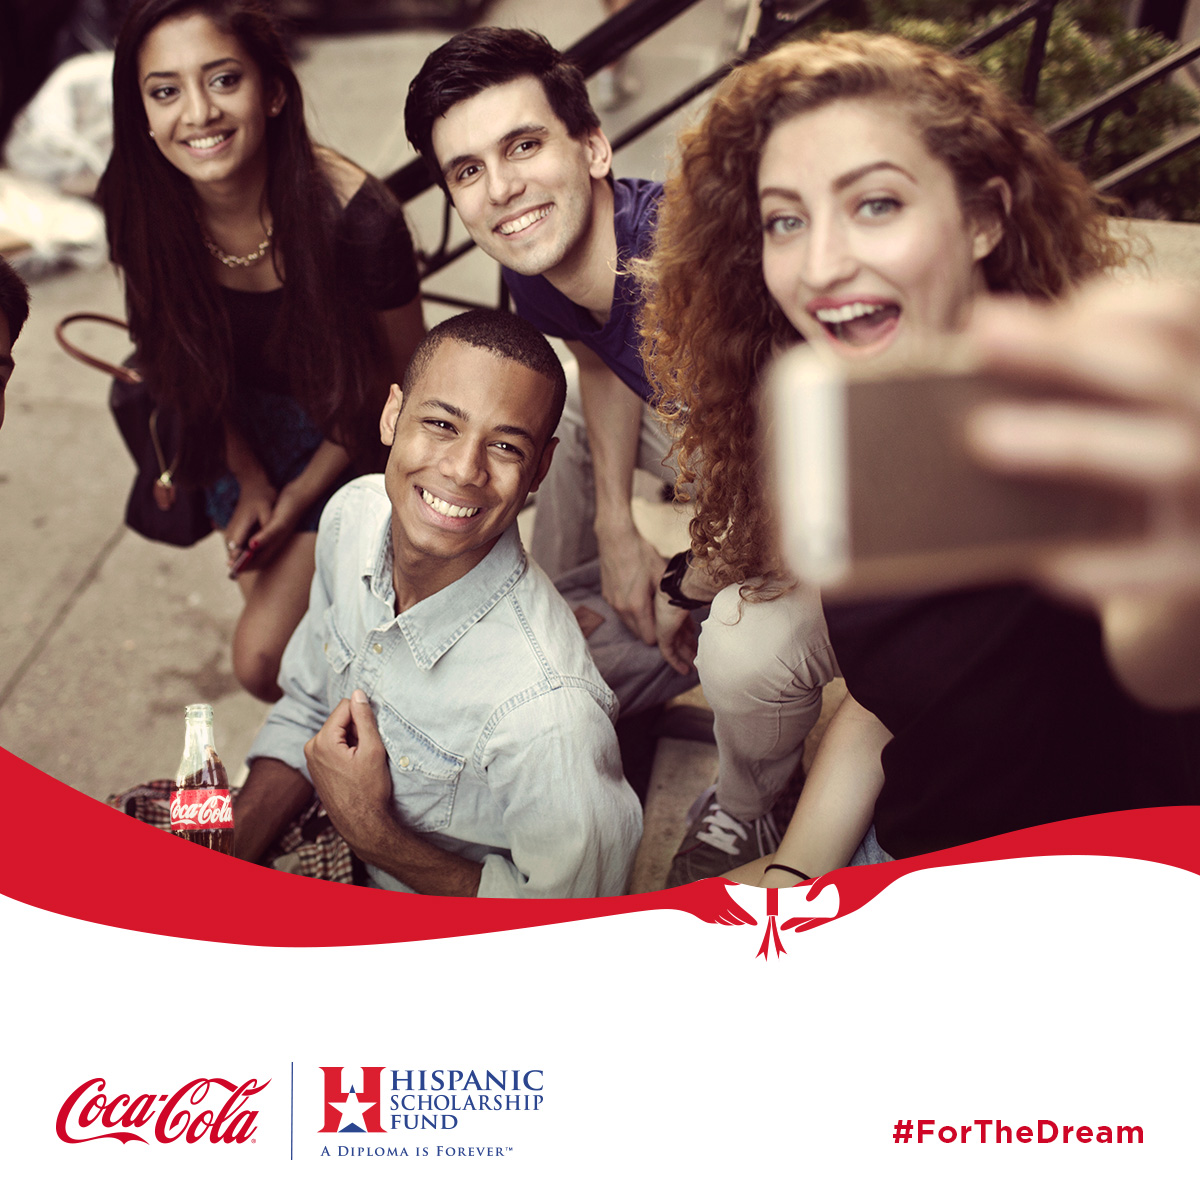 coca cola scholarship essay questions Like any other scholarship the application process is unique to the scholarship yet end up with the same essay questions at their core yes, the questions are.